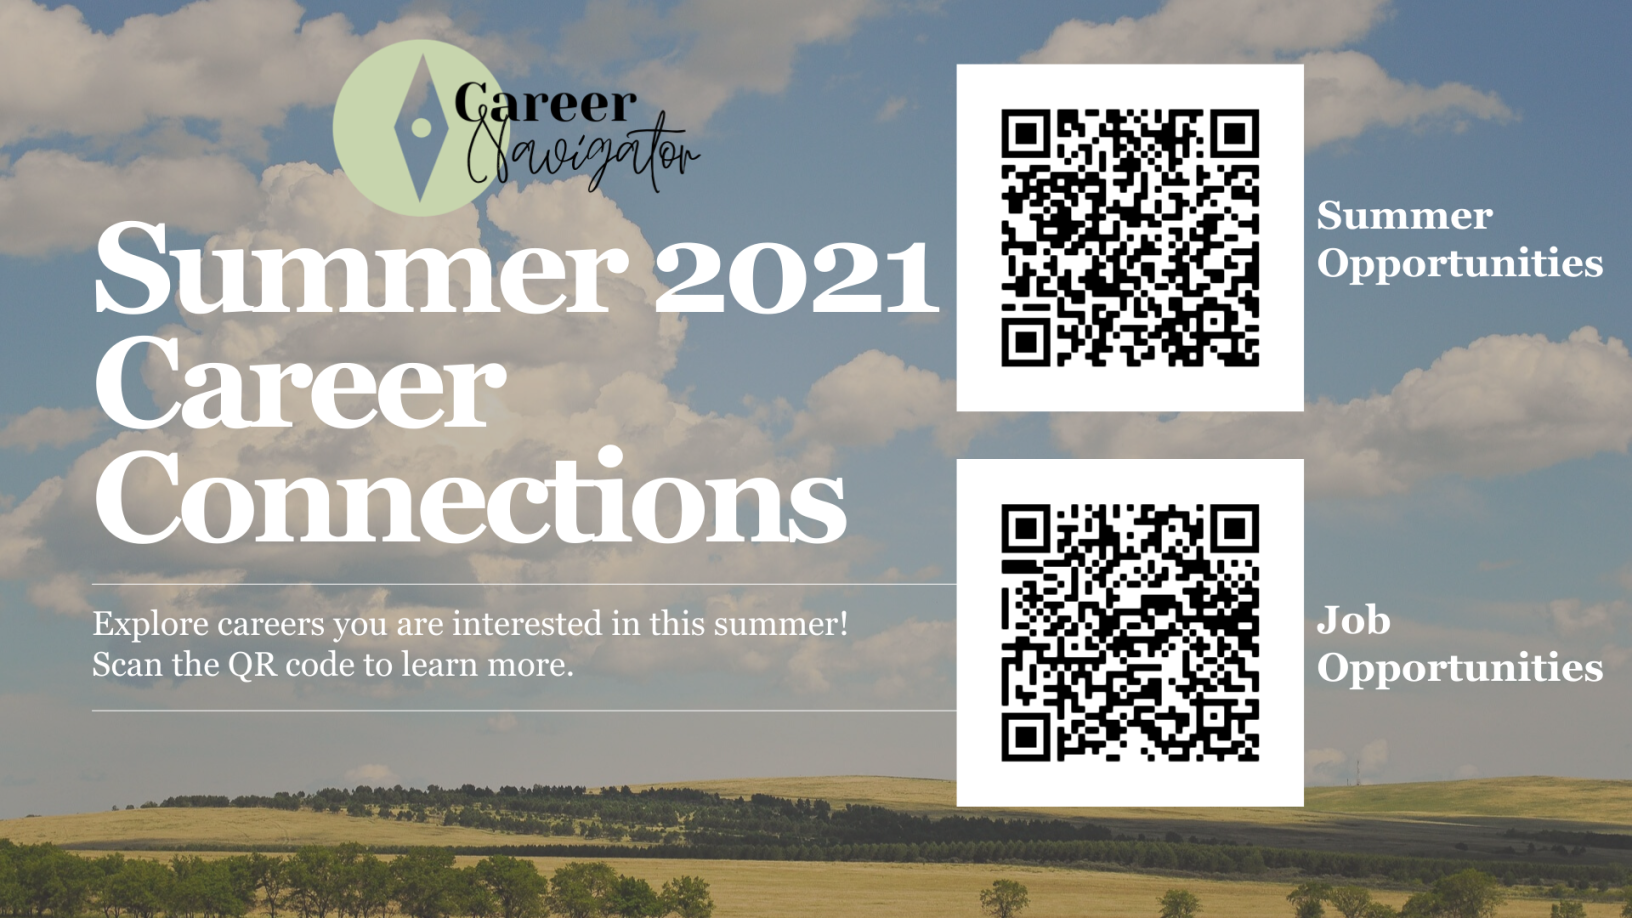 Summer 2021 Career Connections